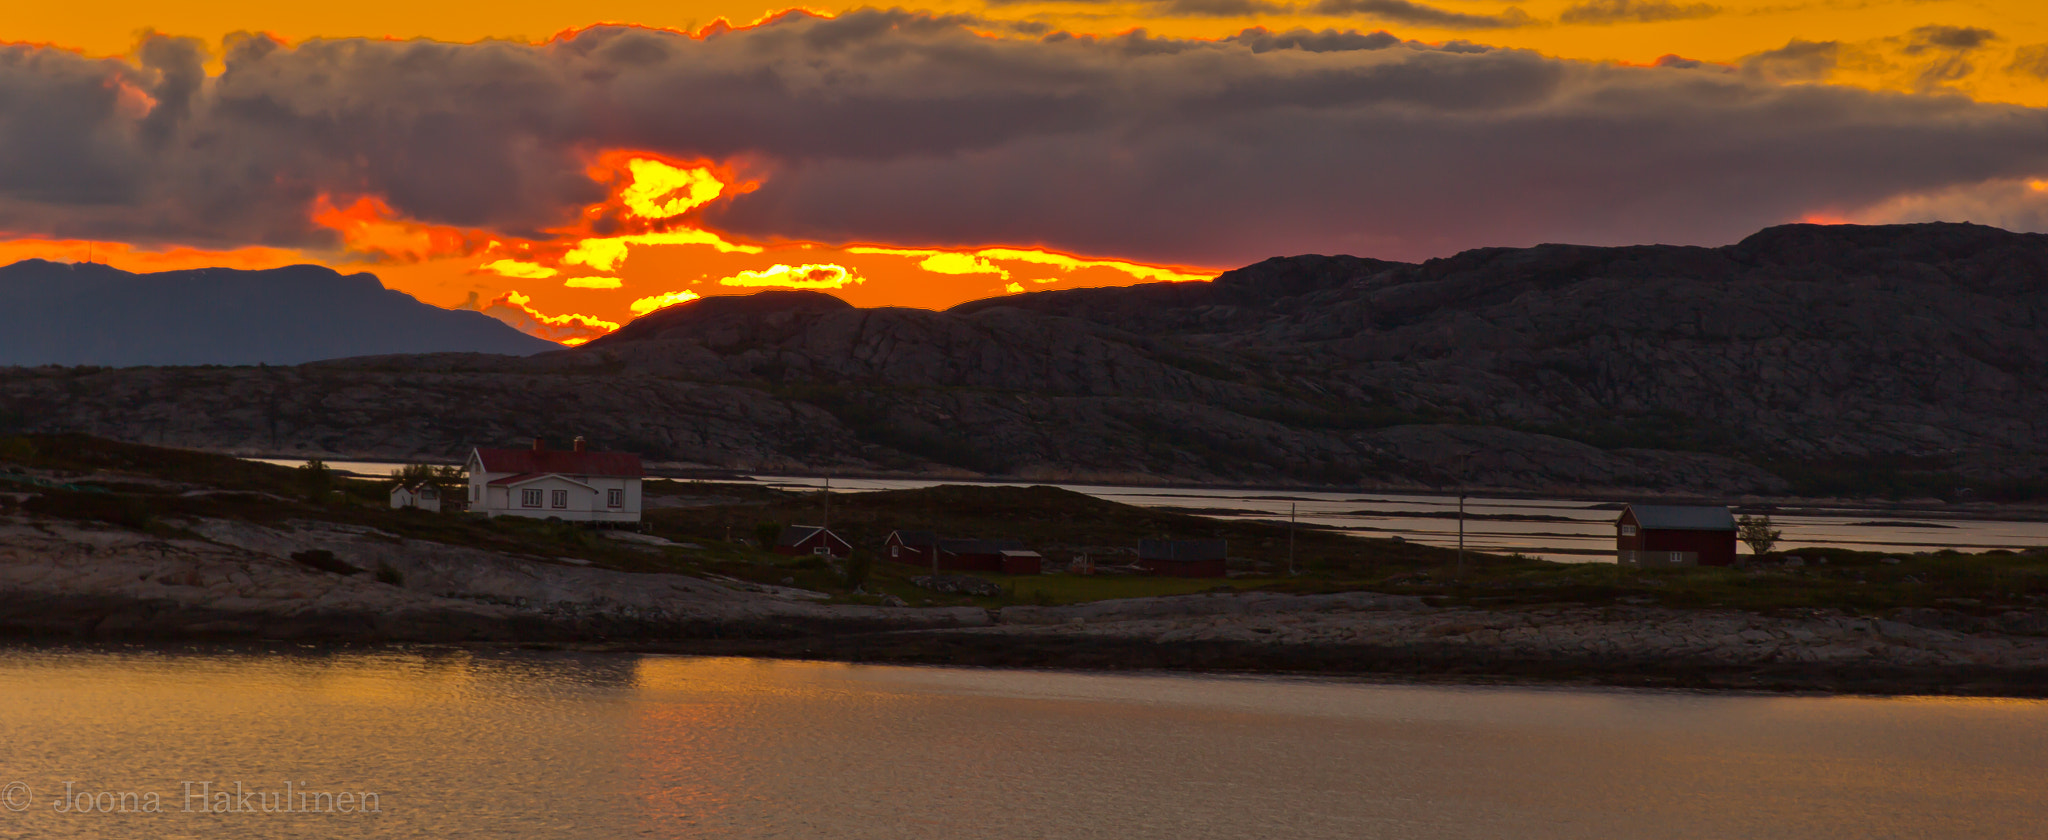 Photograph Midnight in Norway by Joona Hakulinen on 500px